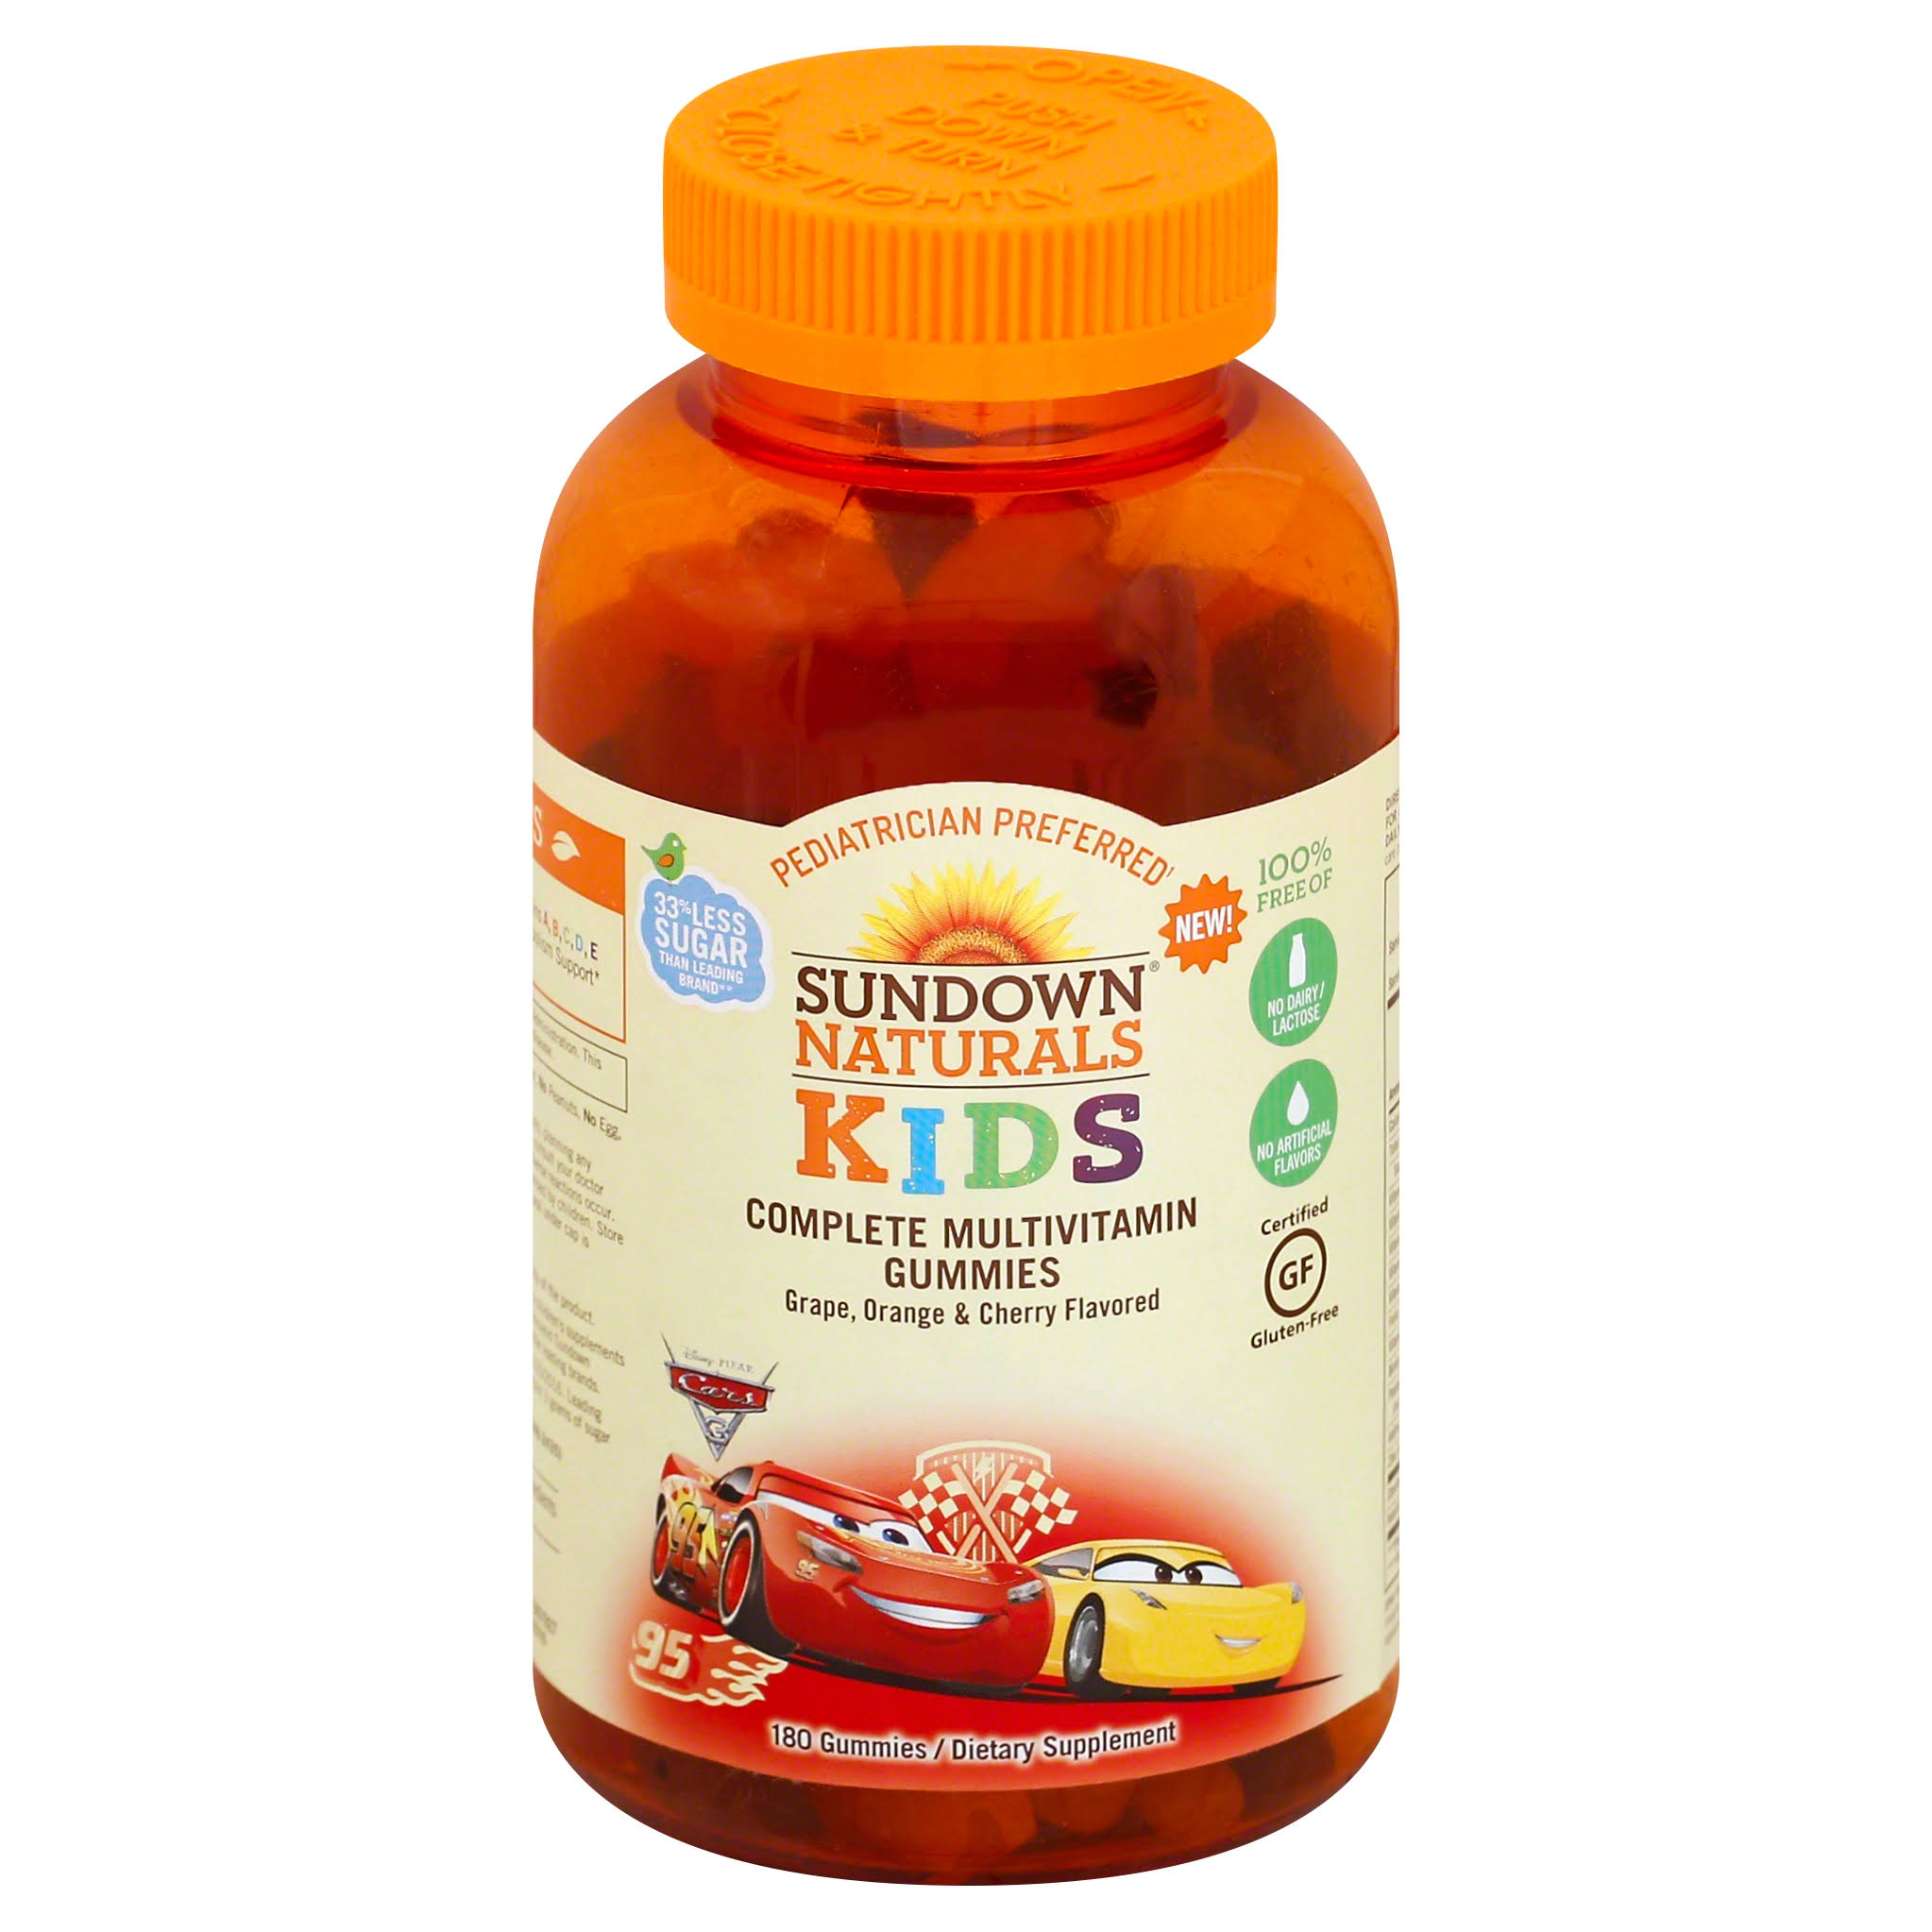 Sundown Naturals Kids Disney Cars 3 Complete Multivitamin Gummies - 180ct